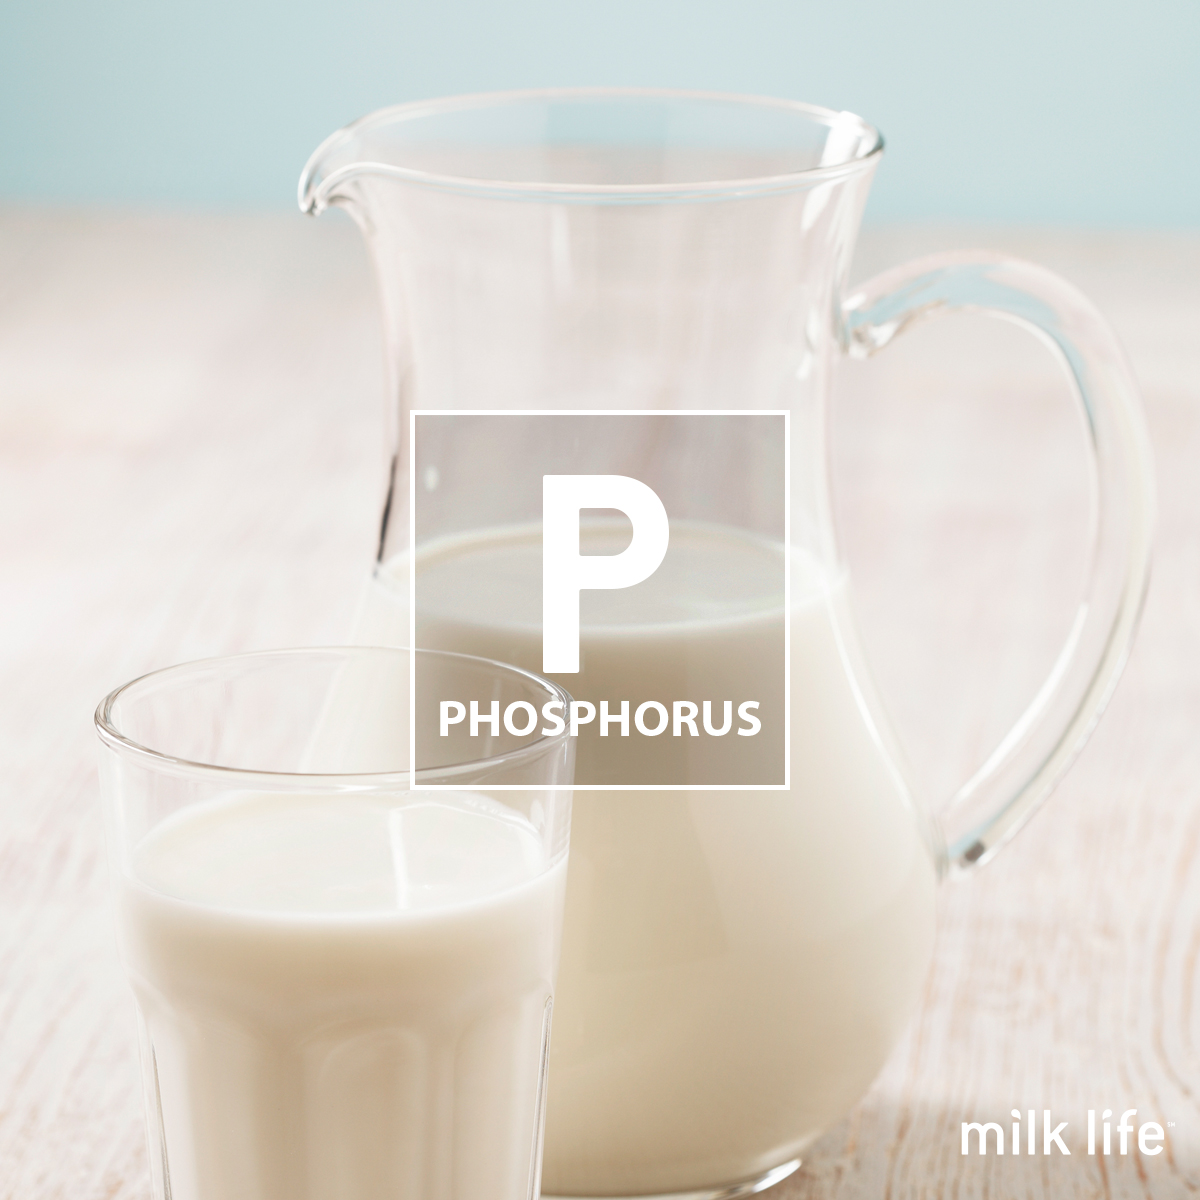 Phosphorus is a nutrient in milk